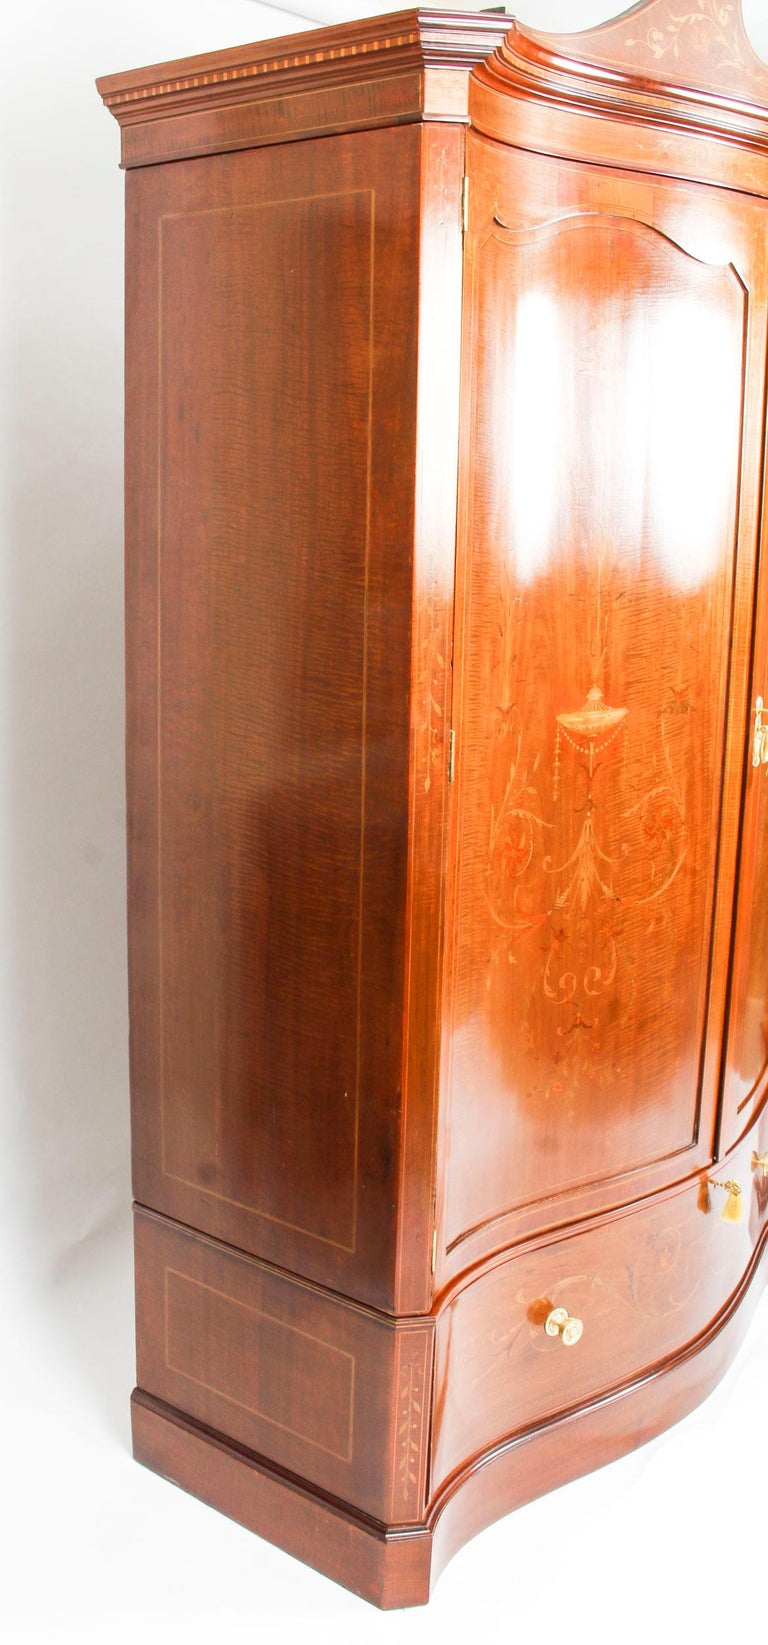 Antique Edwardian Inlaid Wardrobe Attributed to Edwards & Roberts, 19th Century For Sale 7